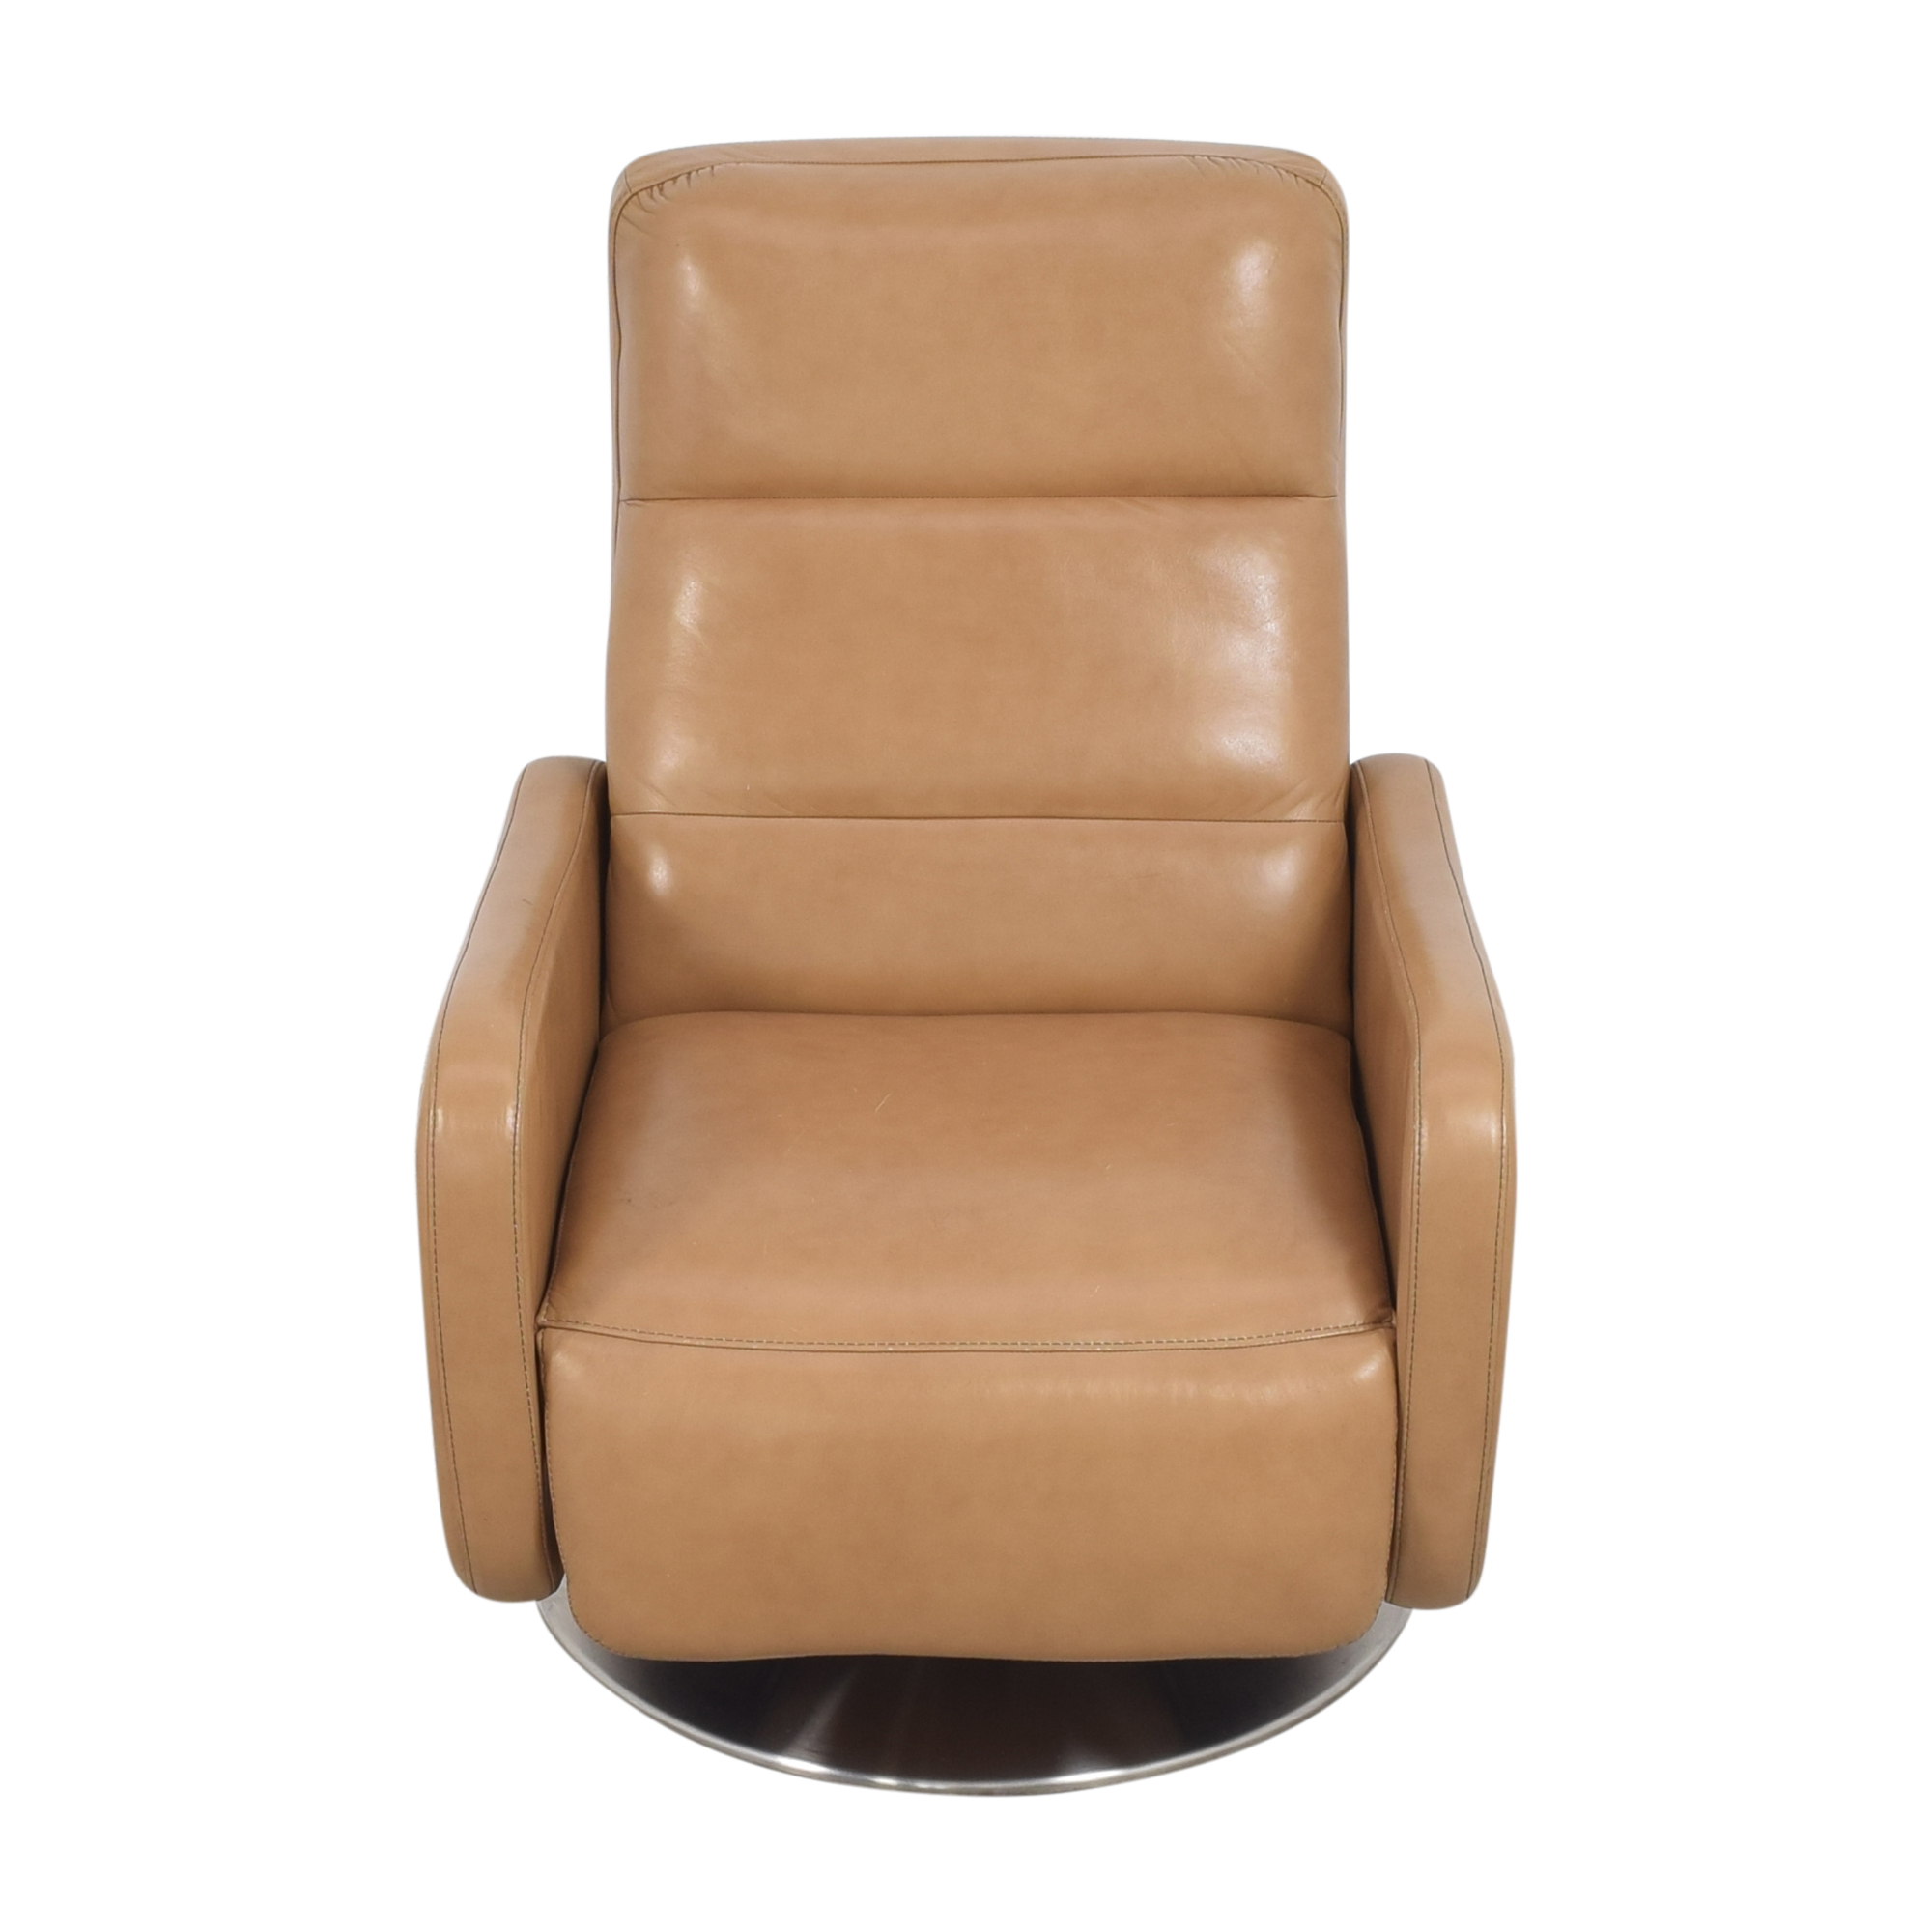 Elite Leather Company Elite Leather Company Aries Recliner Chairs